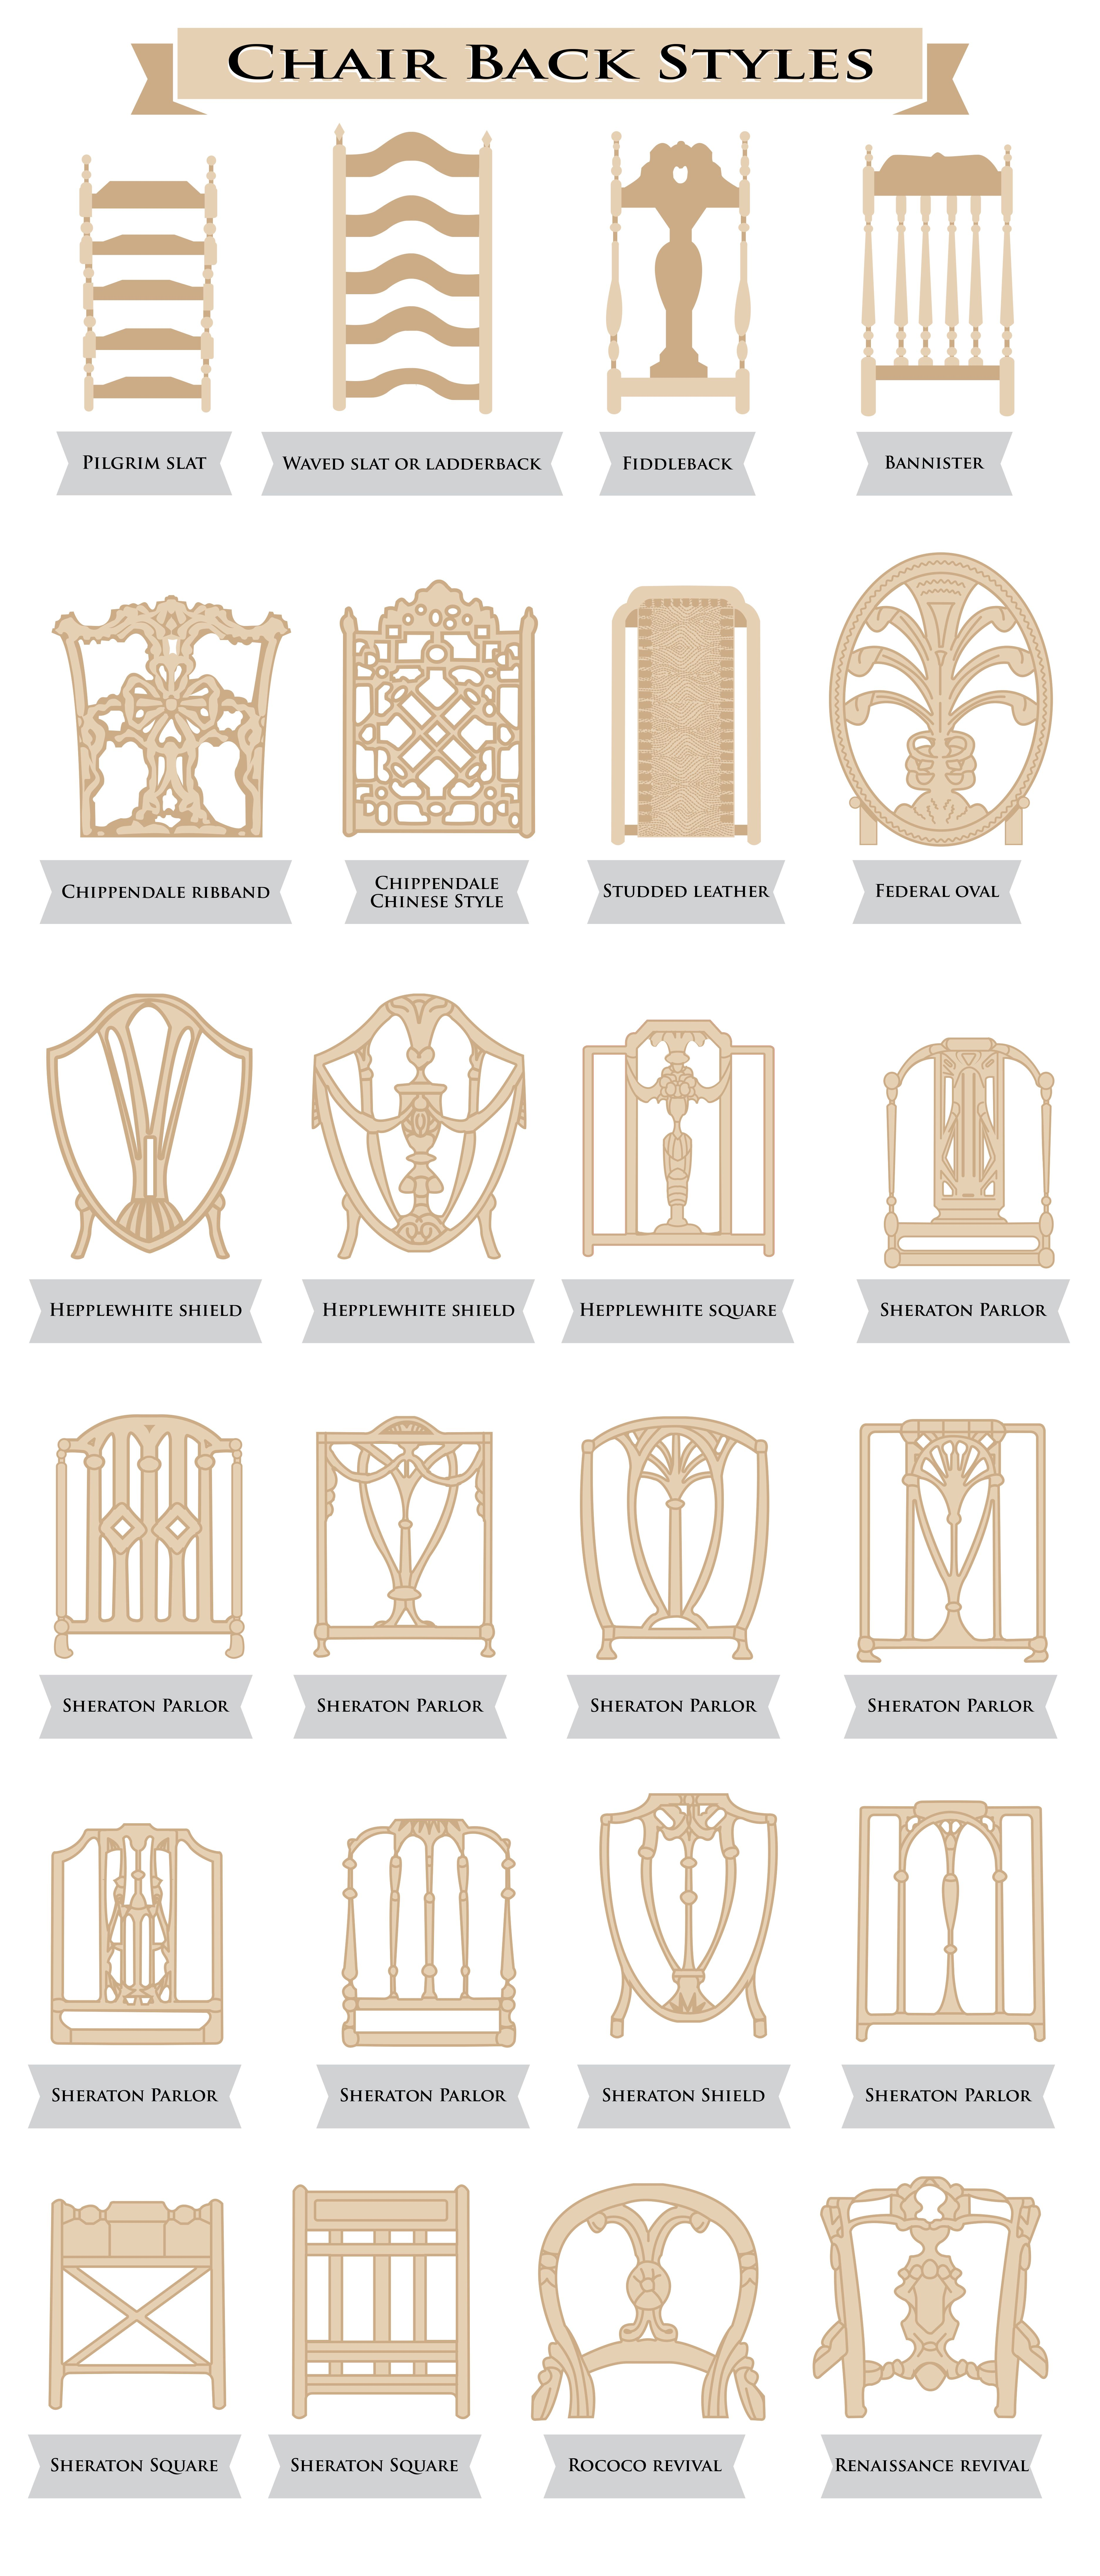 The Ultimate Chair Back Styles Guide 24 Illustrated Styles Antique Chair Styles Chair Backs Arm Chair Styles